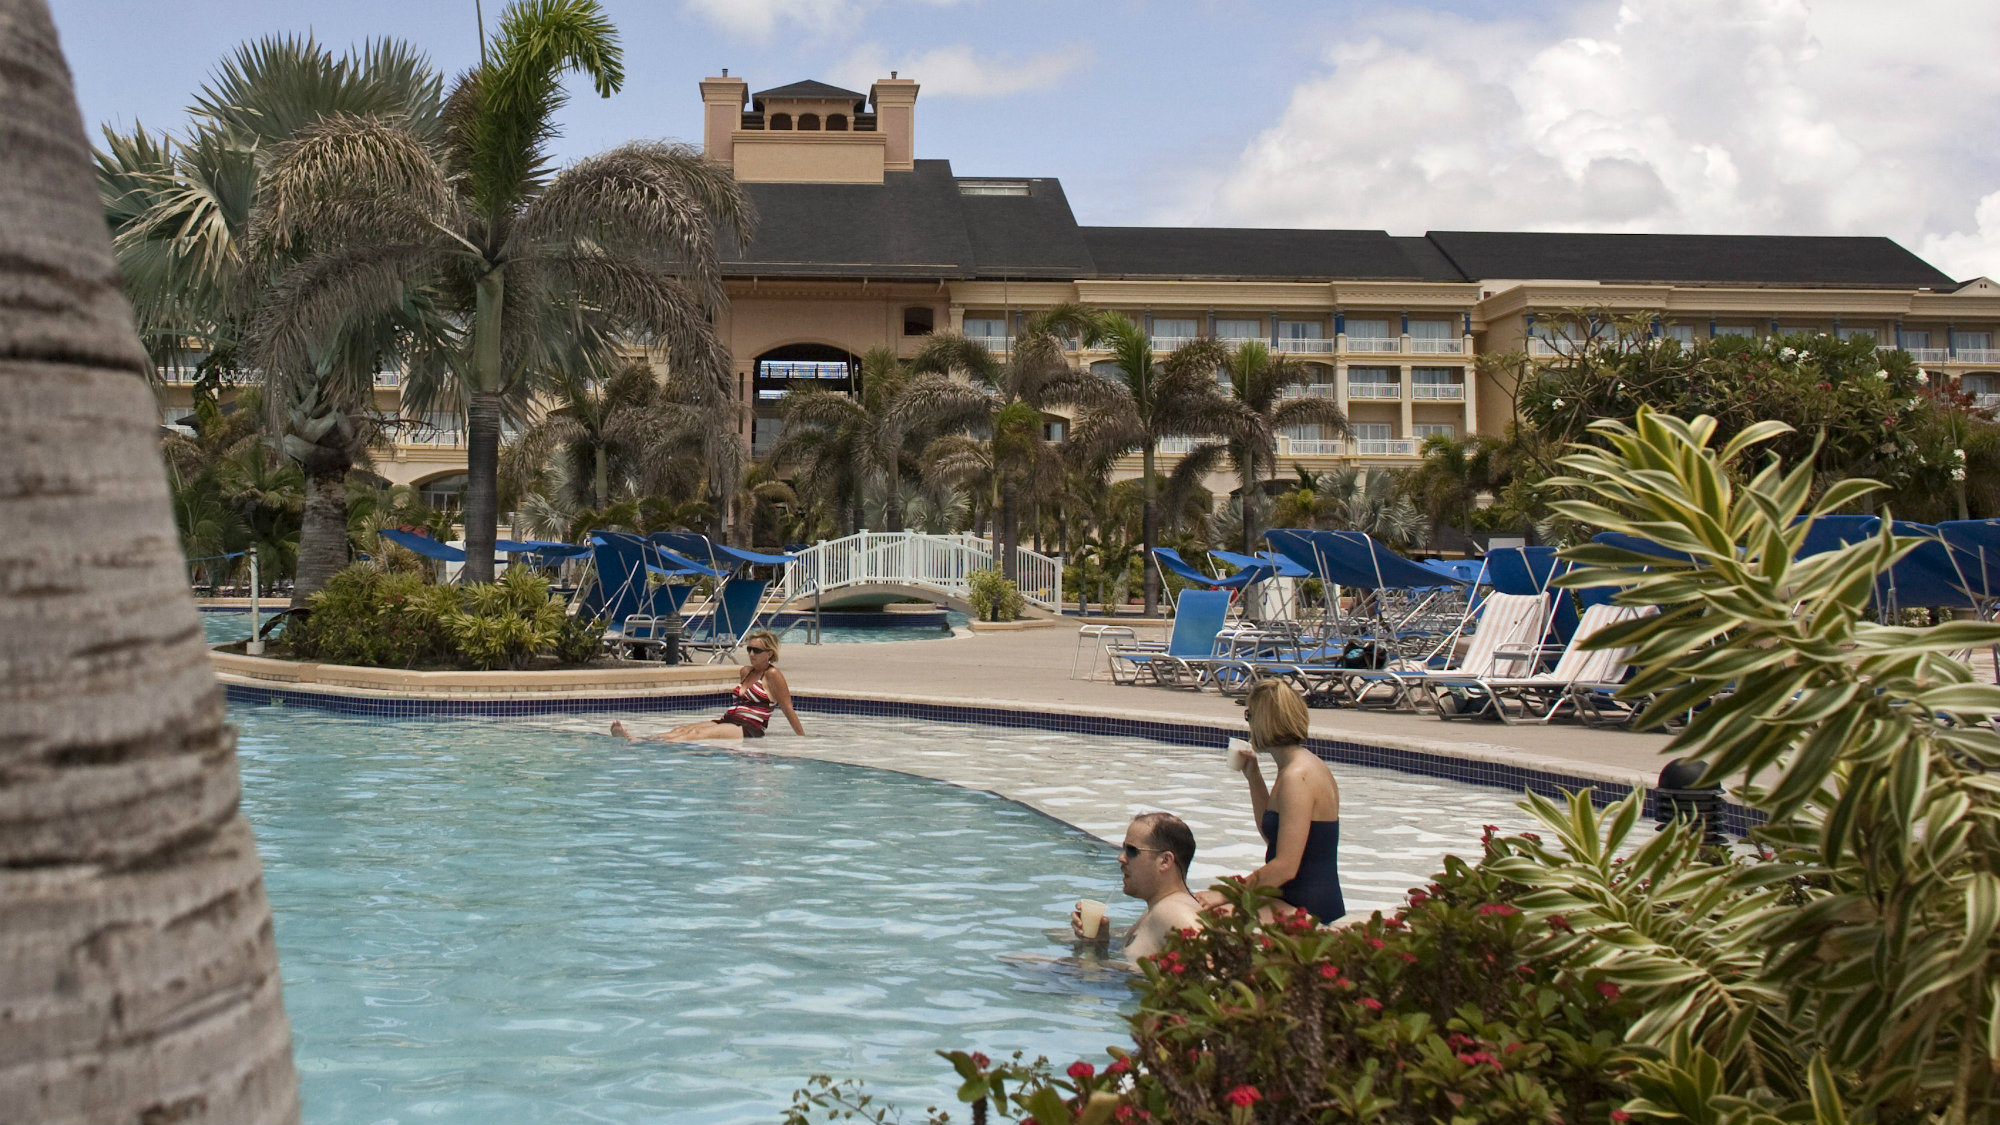 People by swimming pool in luxury hotel